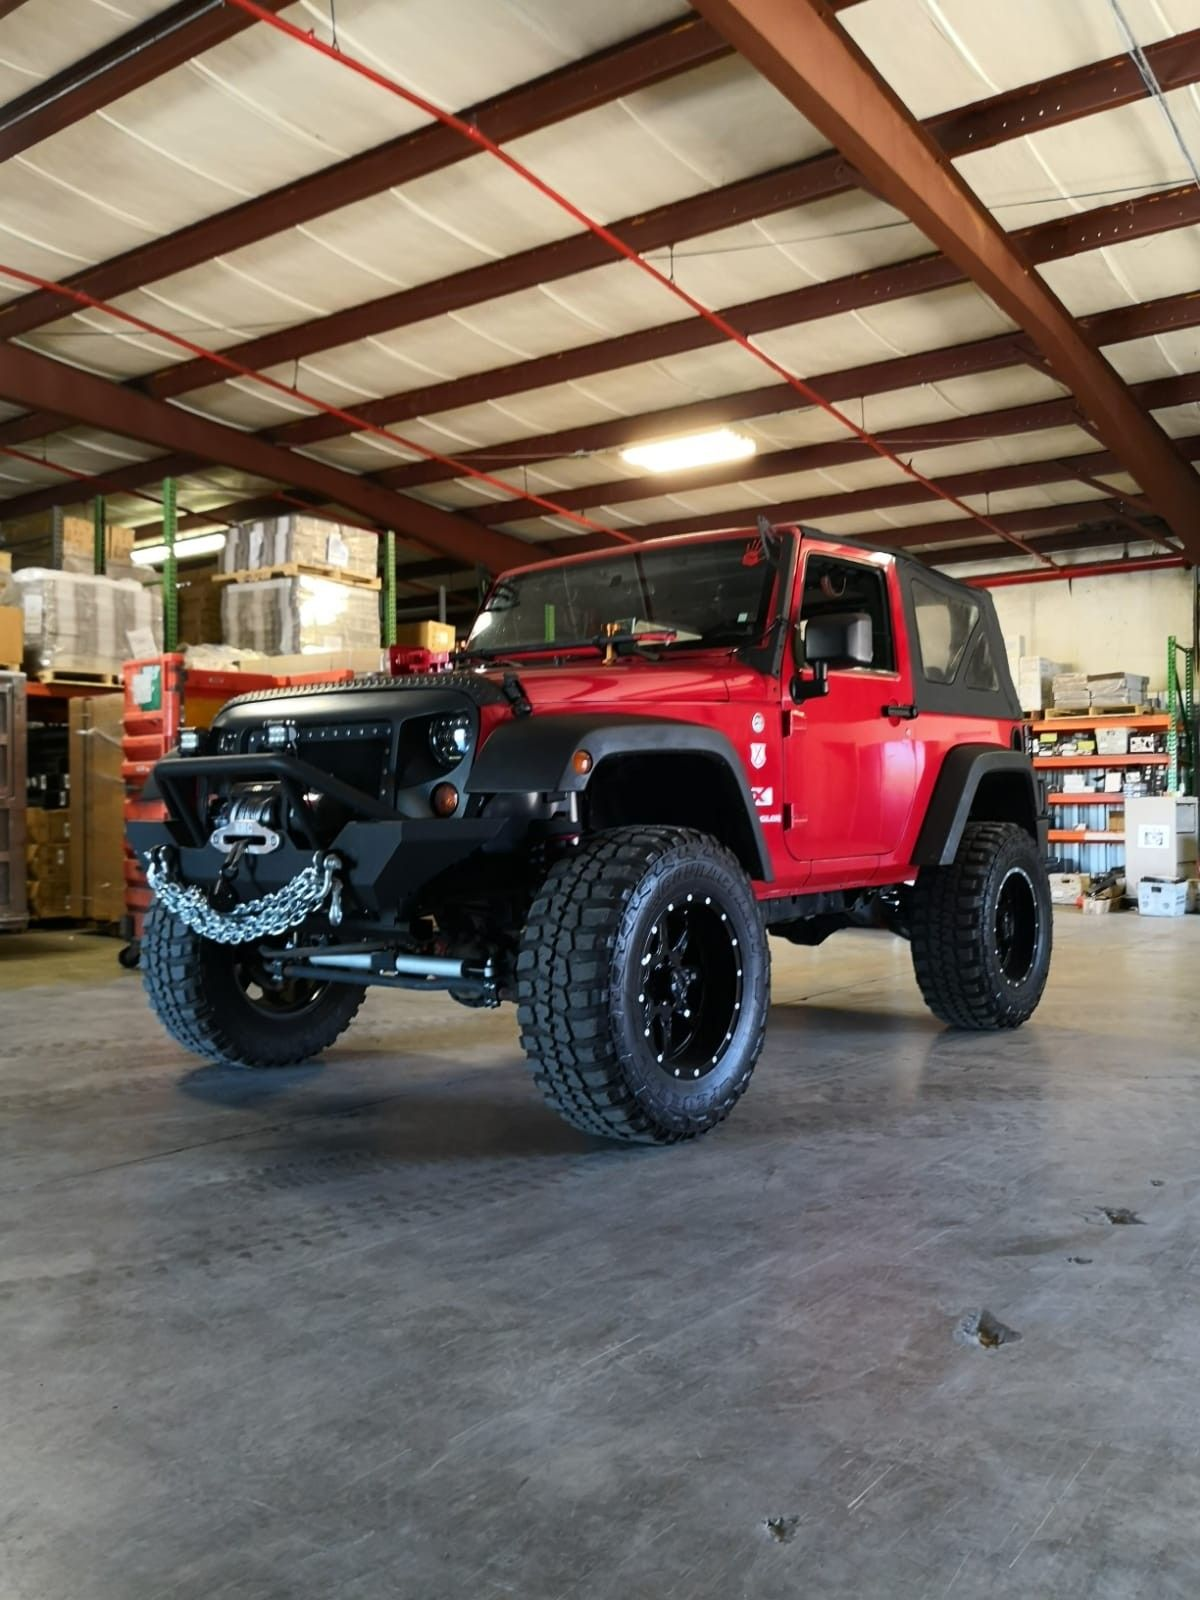 Red Jeep Wrangler Jeepfederation Jeeplife Redjeep Red Jeep